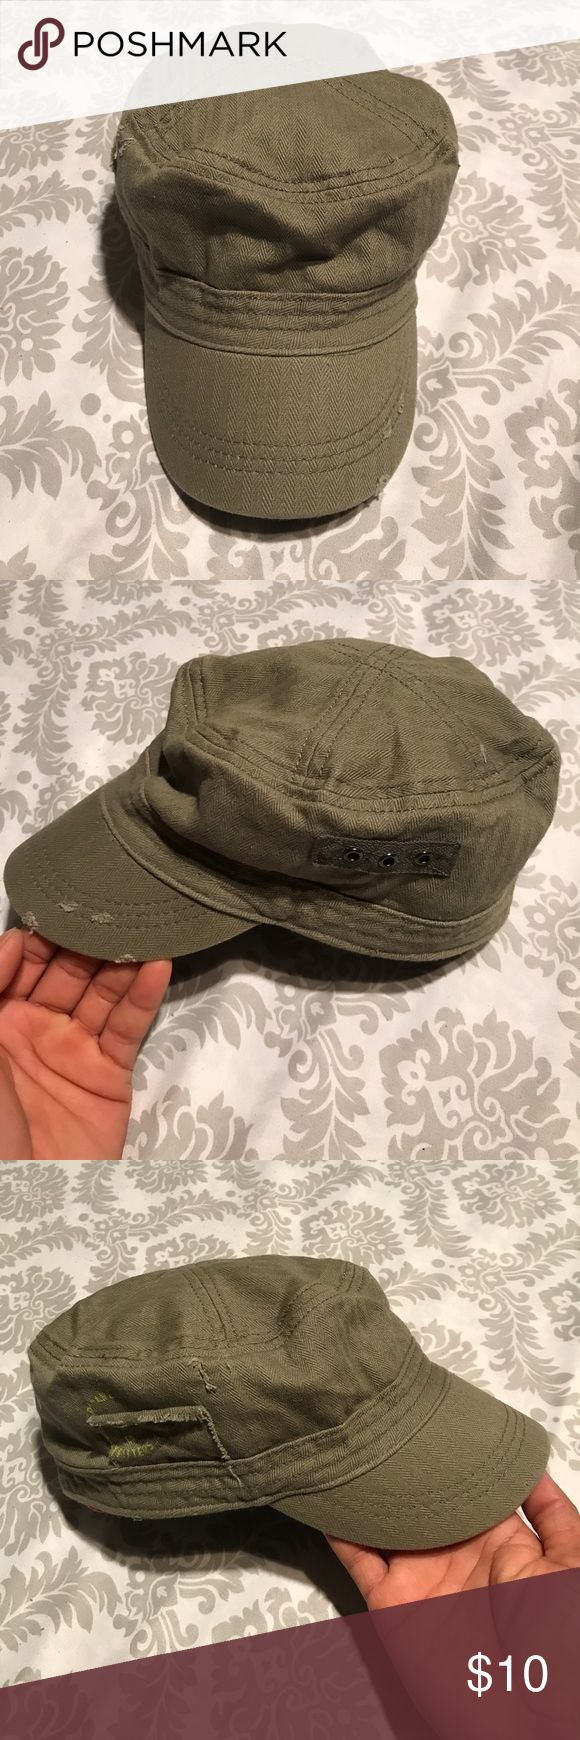 American Eagle Outfitters women's military hat American Eagle Outfitters women's military hat army cap. No need to drop and give us 20. EUC. Elastic back, make it perfect to fit most head. Army Green in color! American Eagle Outfitters Accessories Hats